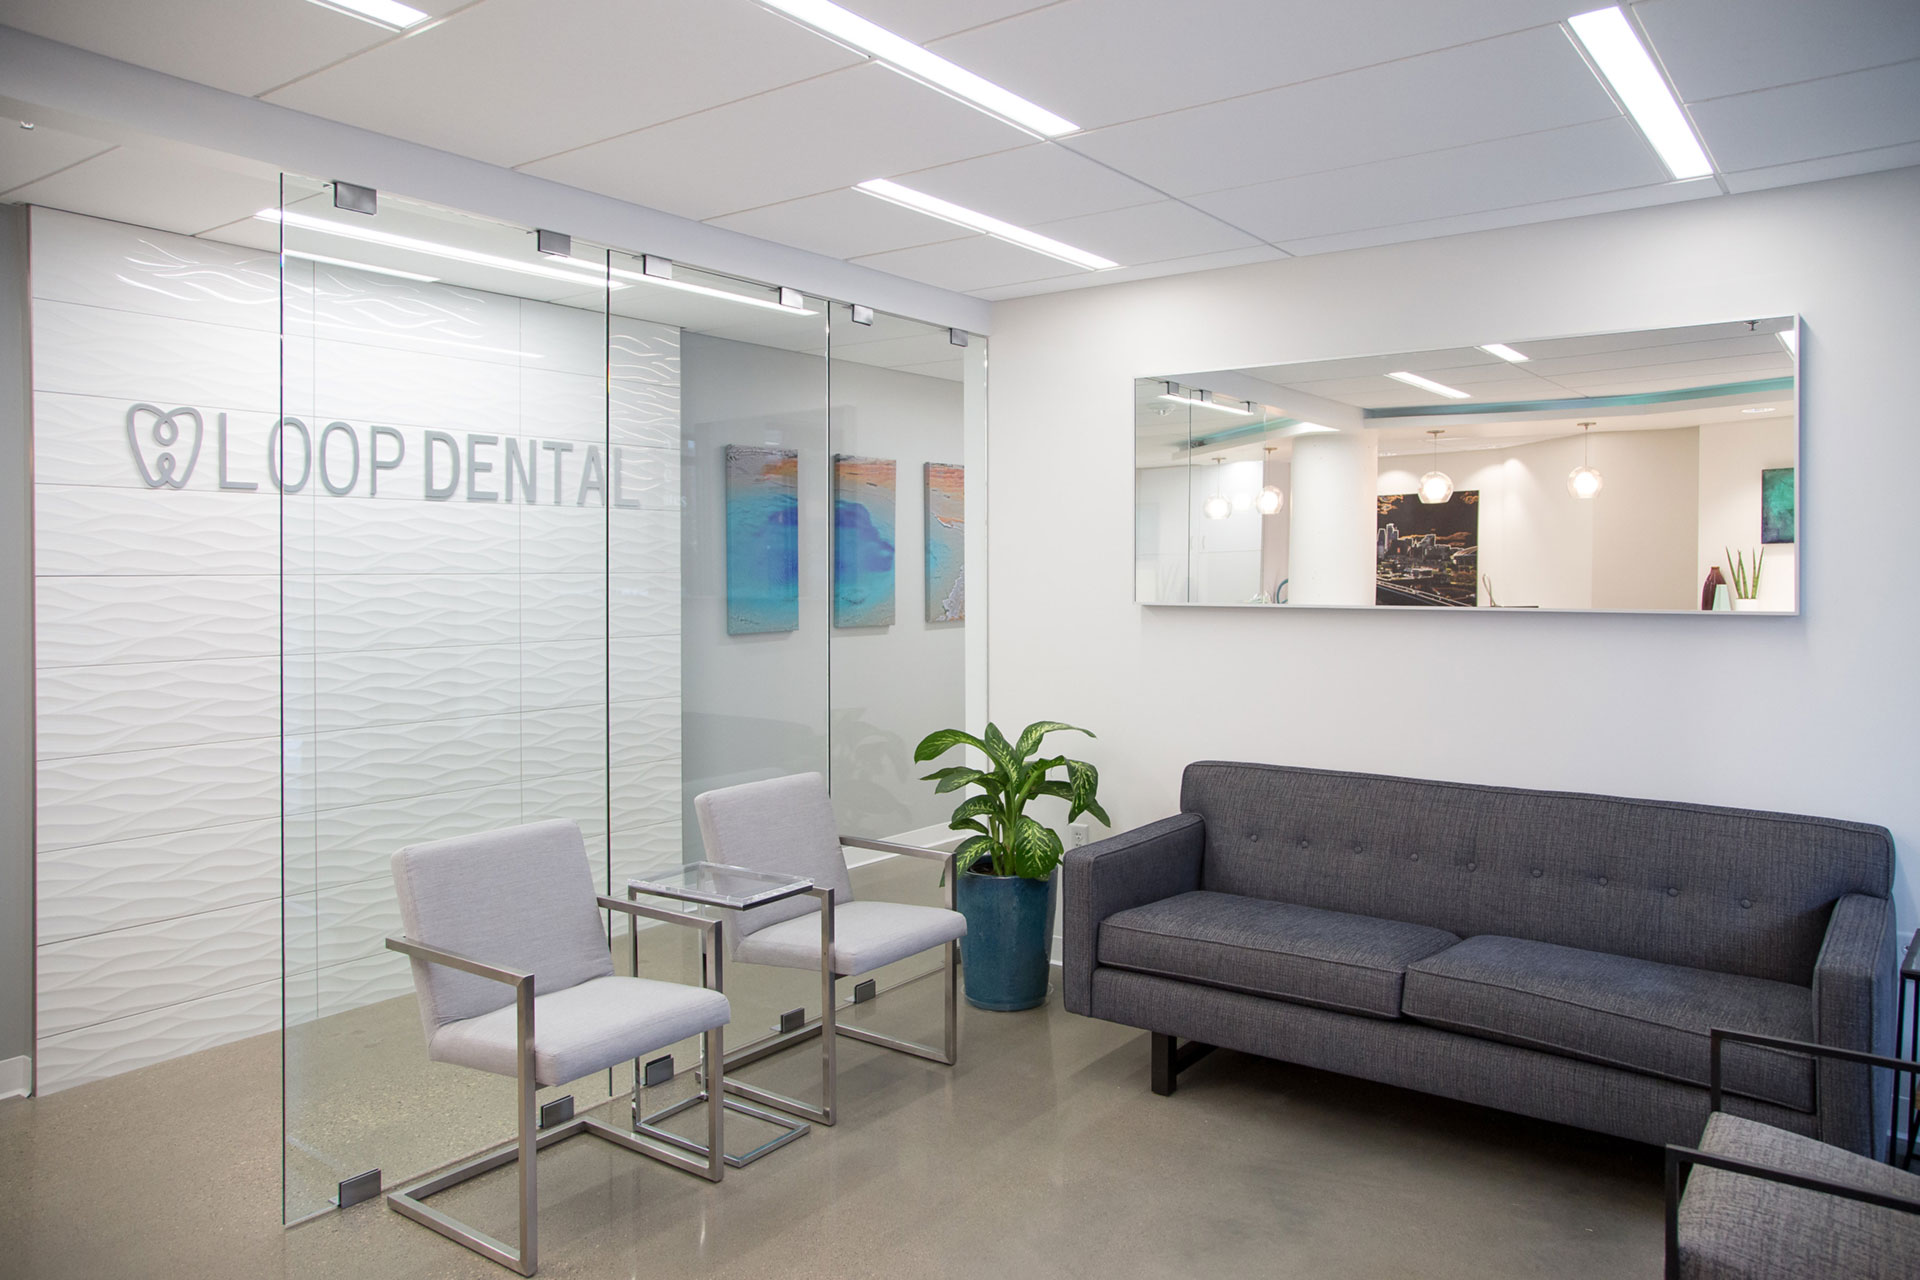 The Loop Dental logo hangs on a wall inside the Loop Dental office.